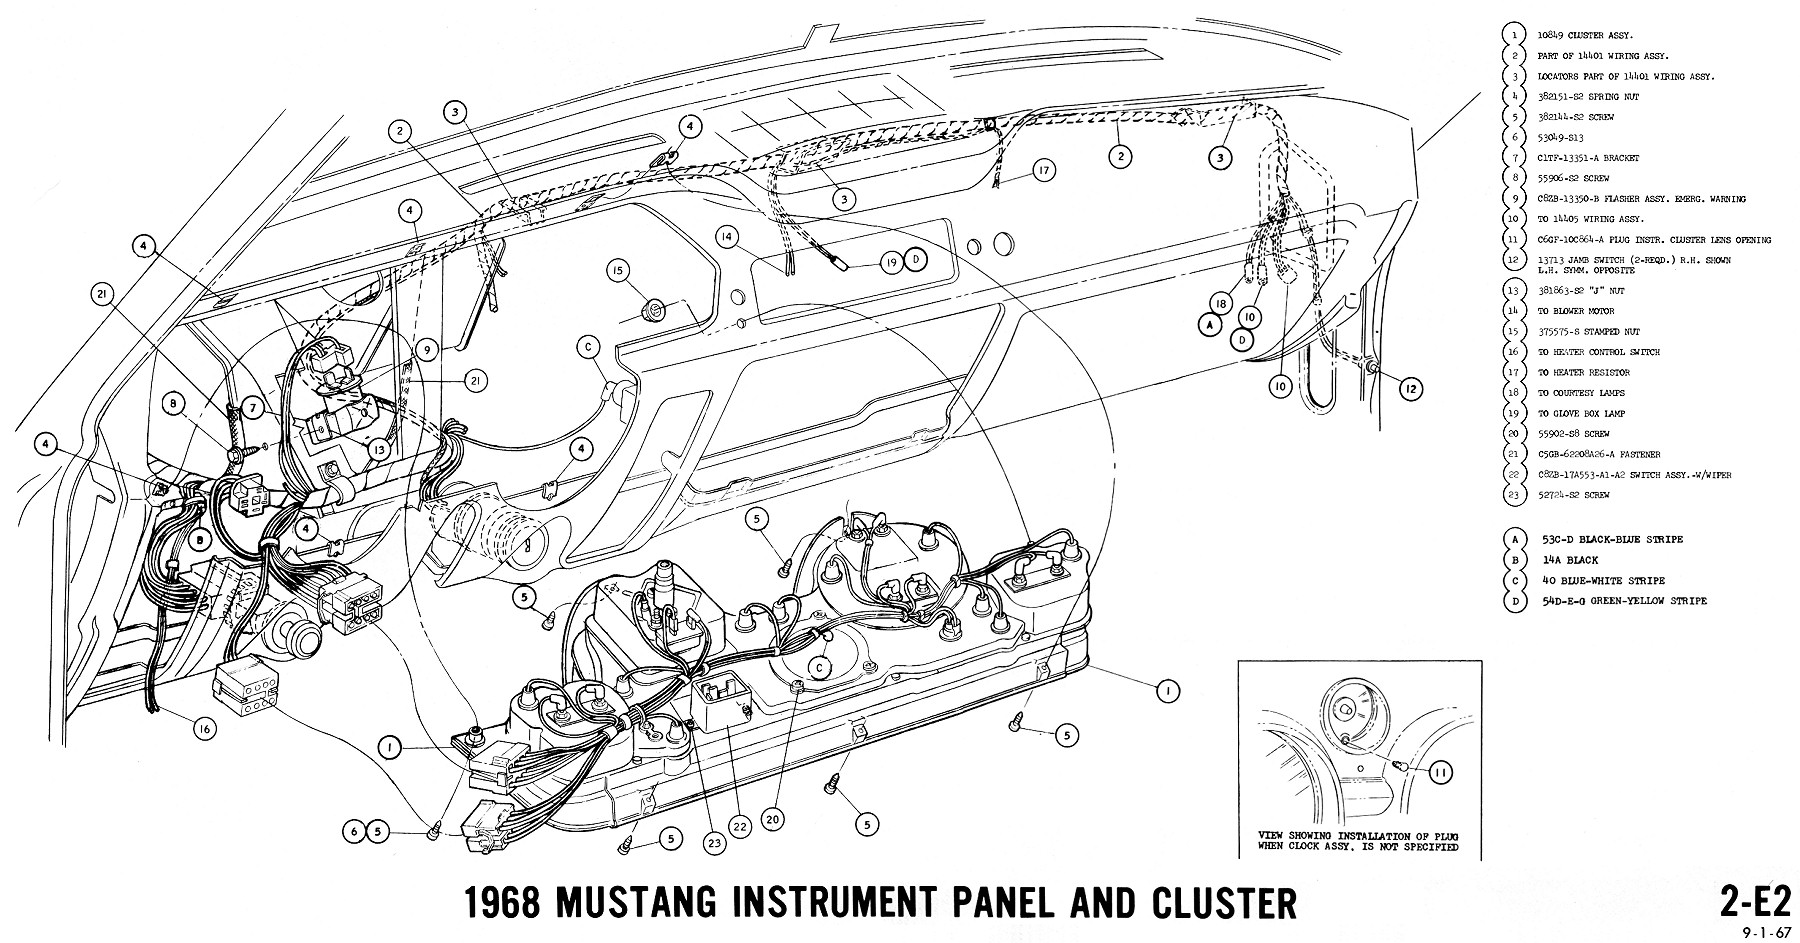 1968 mustang wiring diagram instruments 2 1968 mustang wiring diagrams and vacuum schematics average joe 1970 mustang wiring diagram pdf at bakdesigns.co